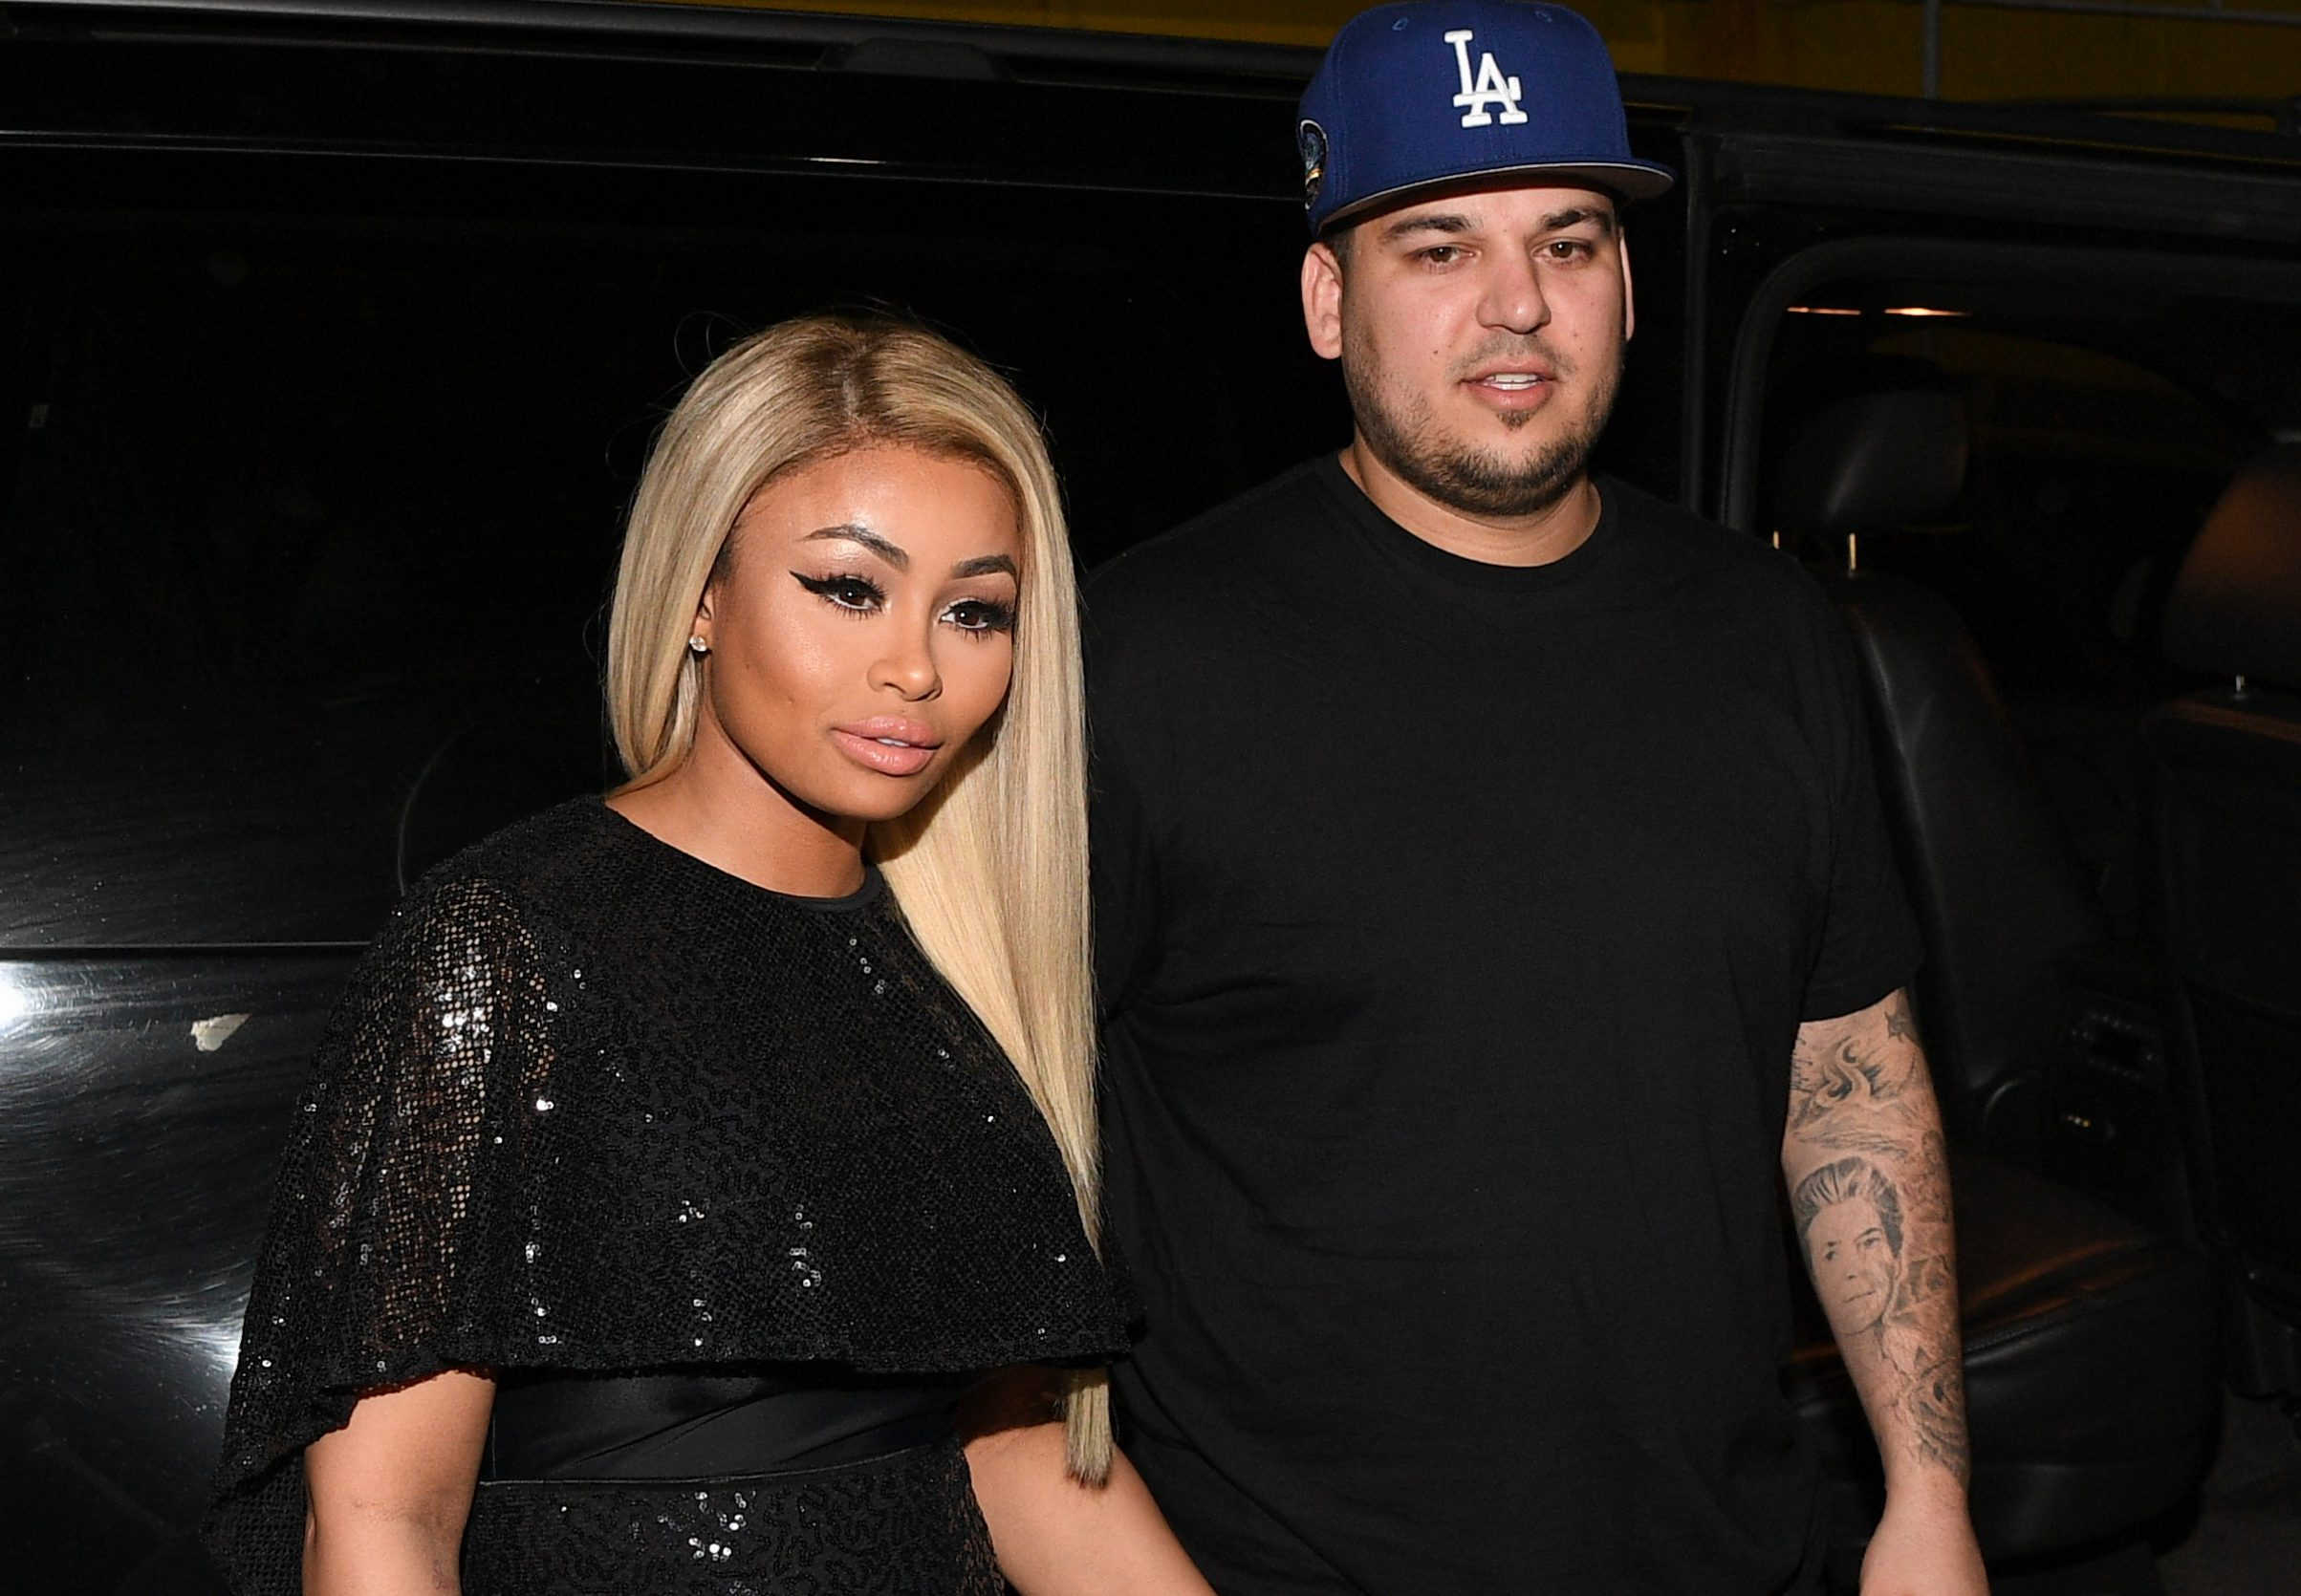 Ryan Seacrest promises a few surprises from Blac Chyna and Rob Kardashian's reality show